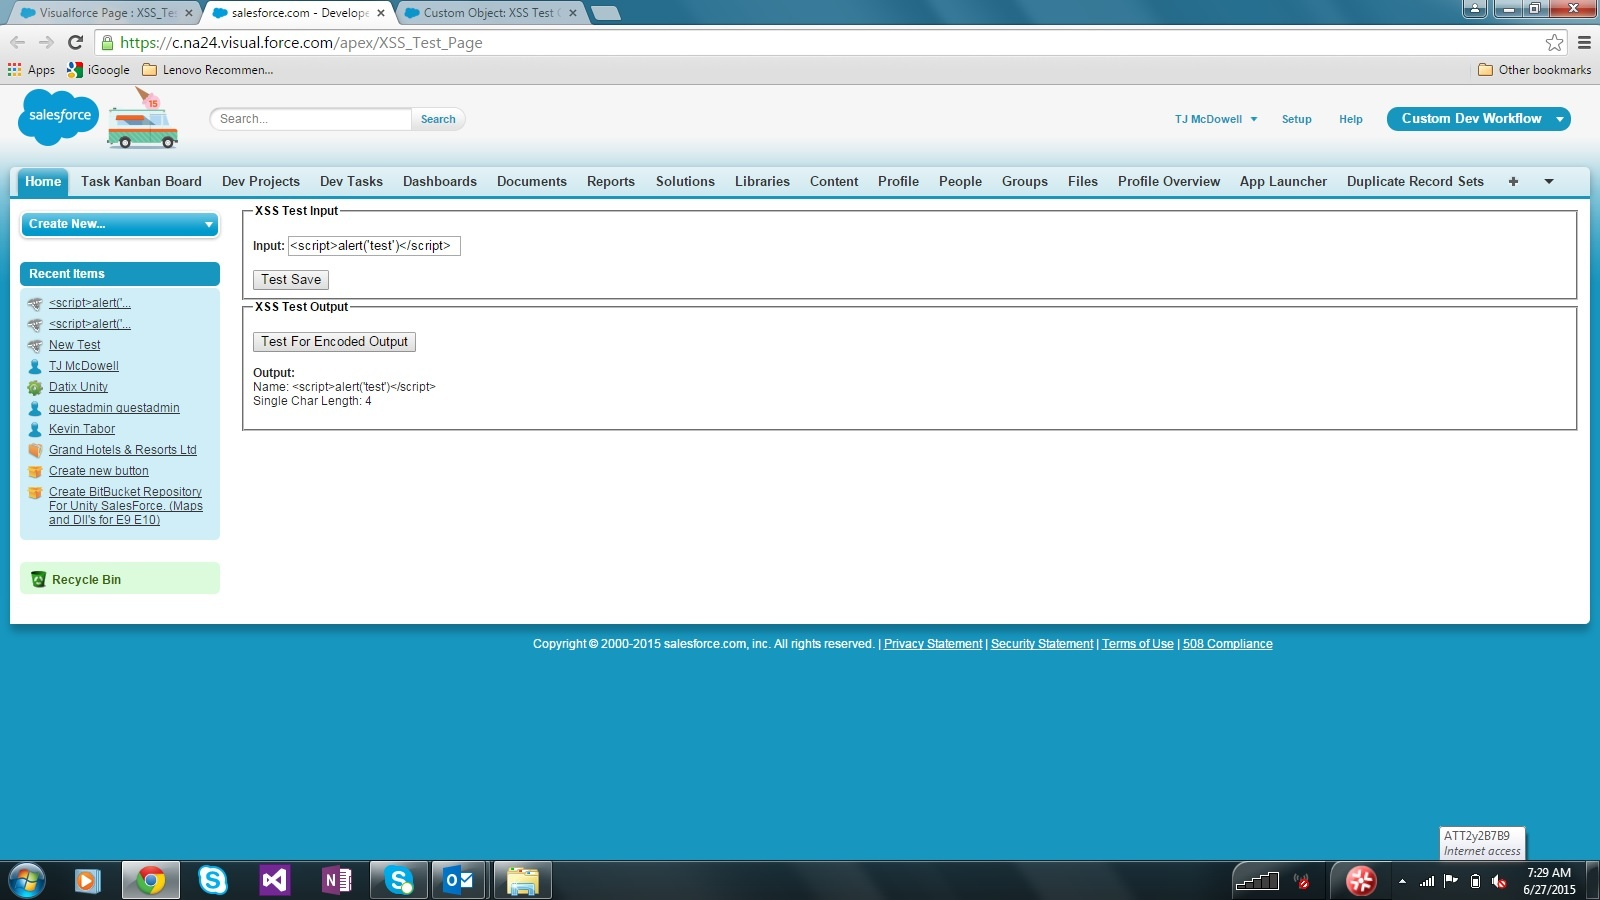 Visualforce XSS Test Page Rendered